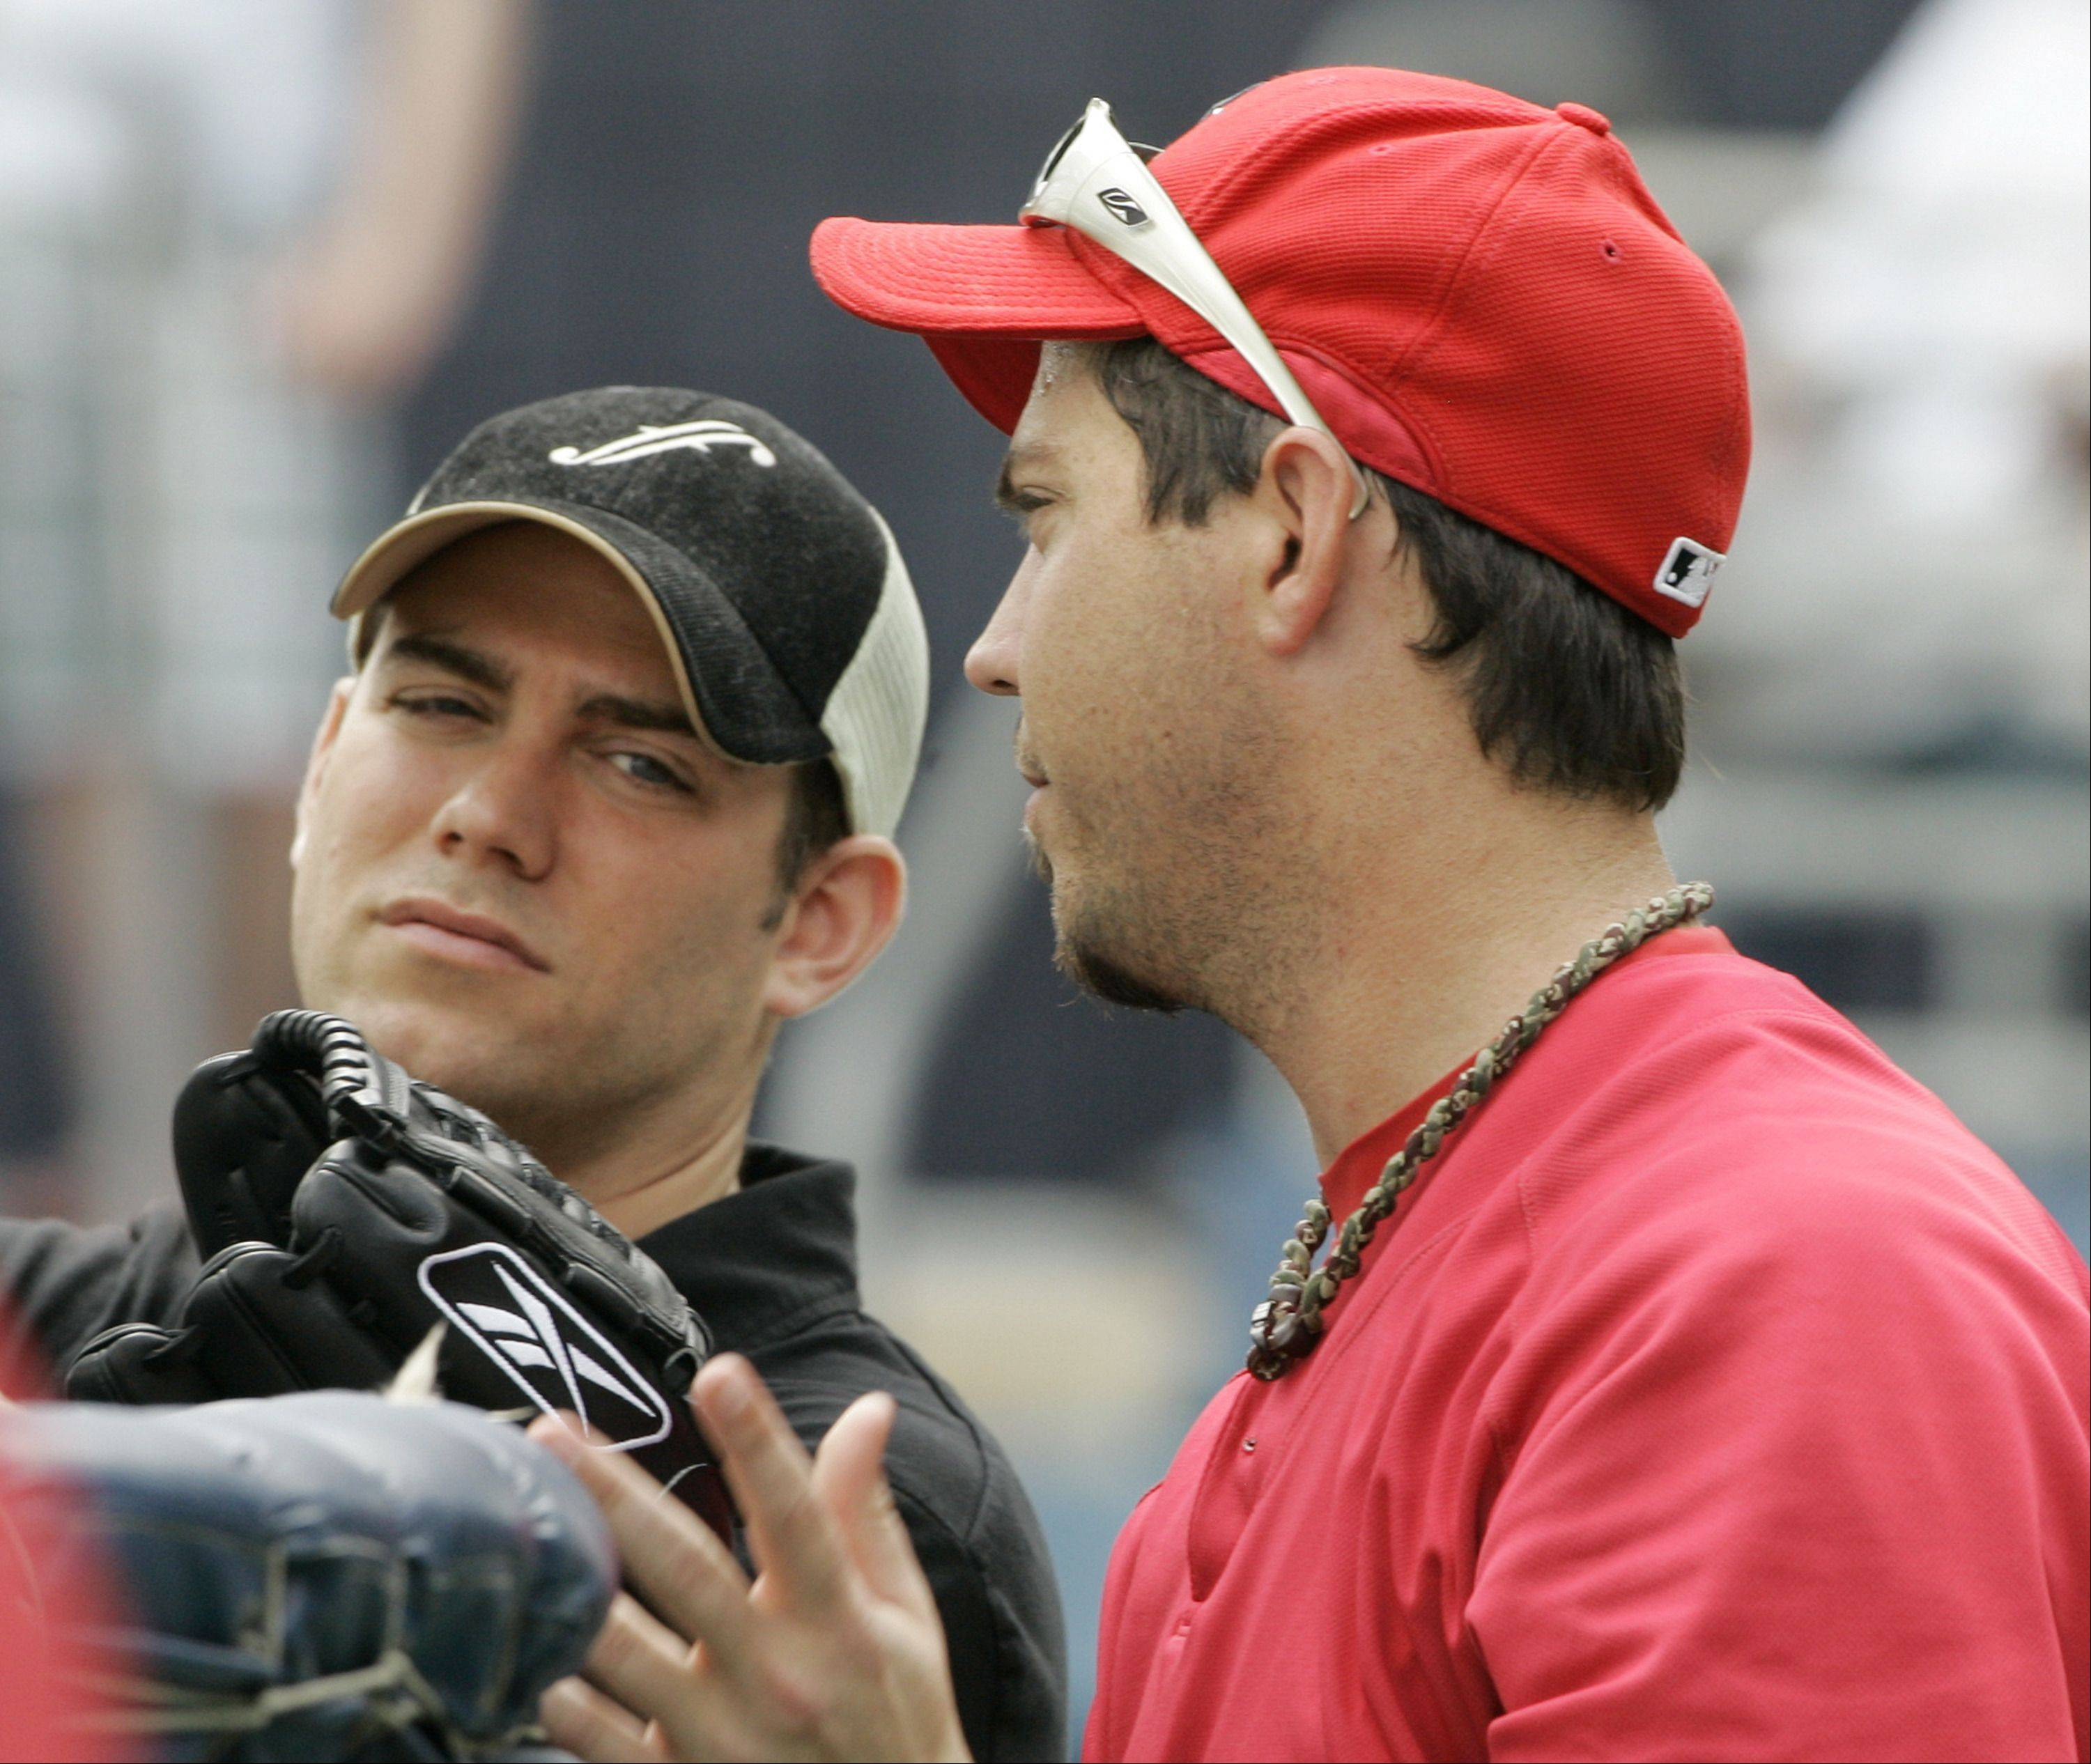 Boston Red Sox general manager Theo Epstein, left, and pitcher Josh Beckett talk during a team baseball practice in Fort Myers, Fla., in this March 7, 2008 file photo. Theo Epstein took risks that paid off with the Red Sox first championship in 86 years, sparking celebrations by long-suffering fans in 2004.